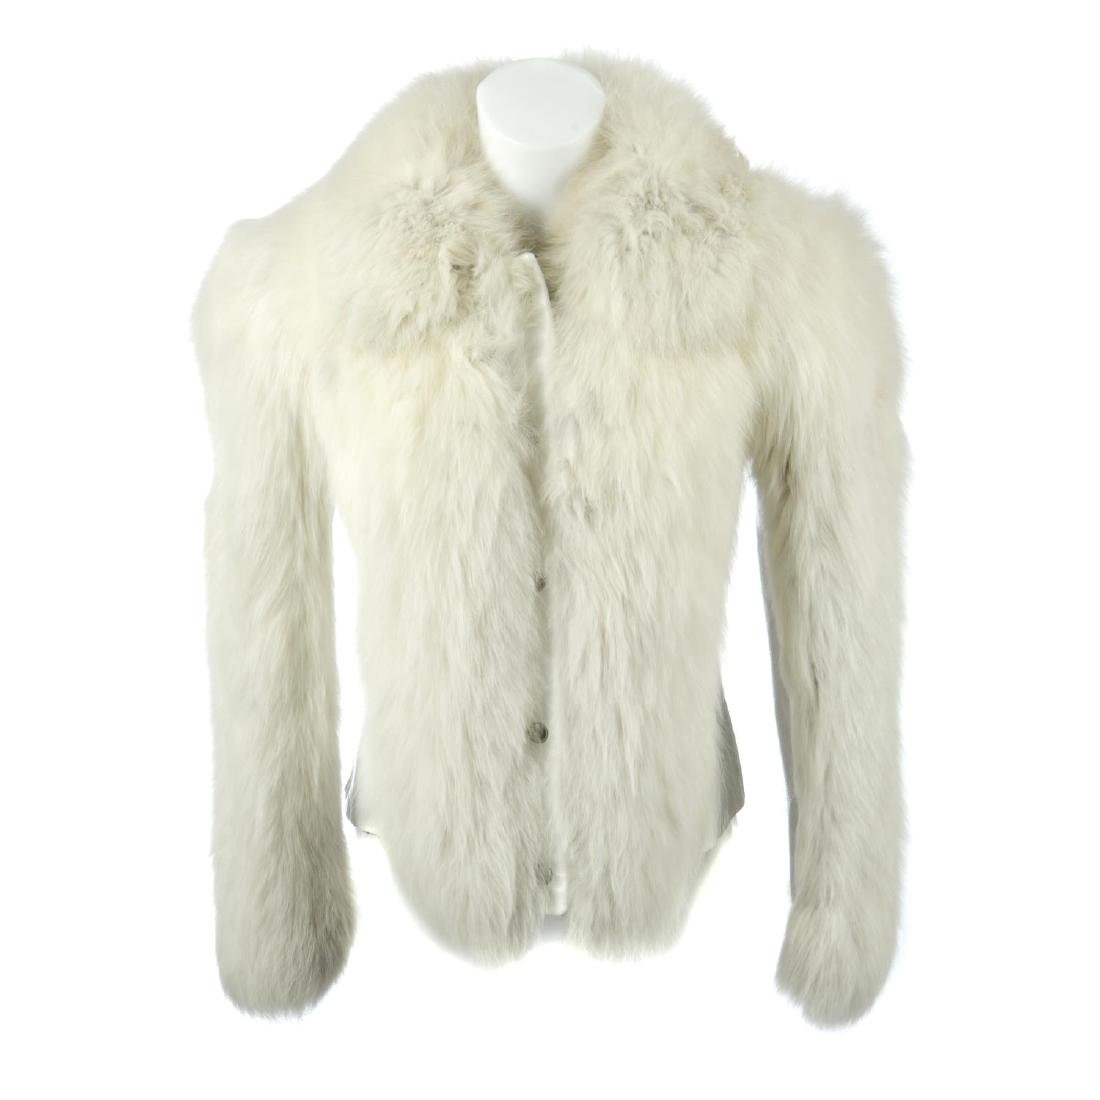 A leather jacket with fox fur panels. Designed with